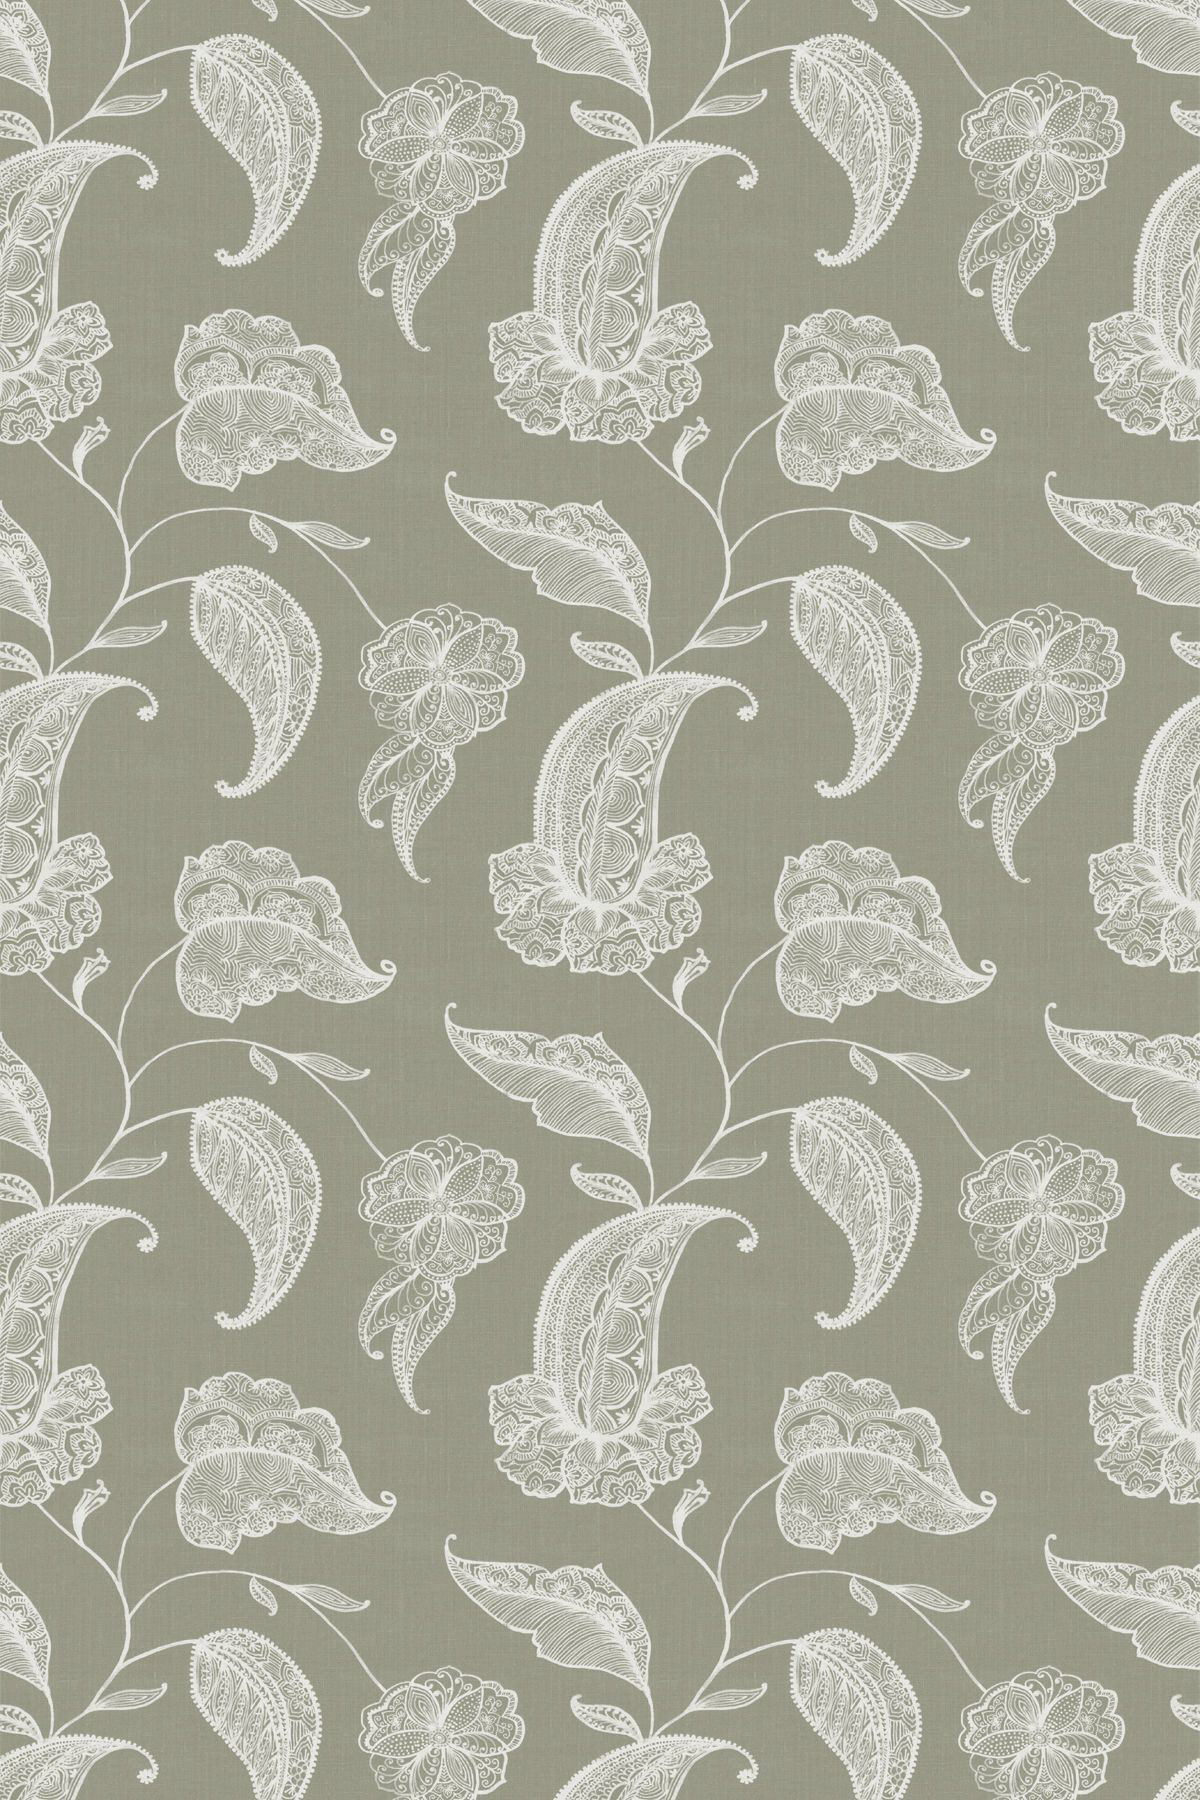 Image of Blendworth Fabric Curiosity, Curiosit/002